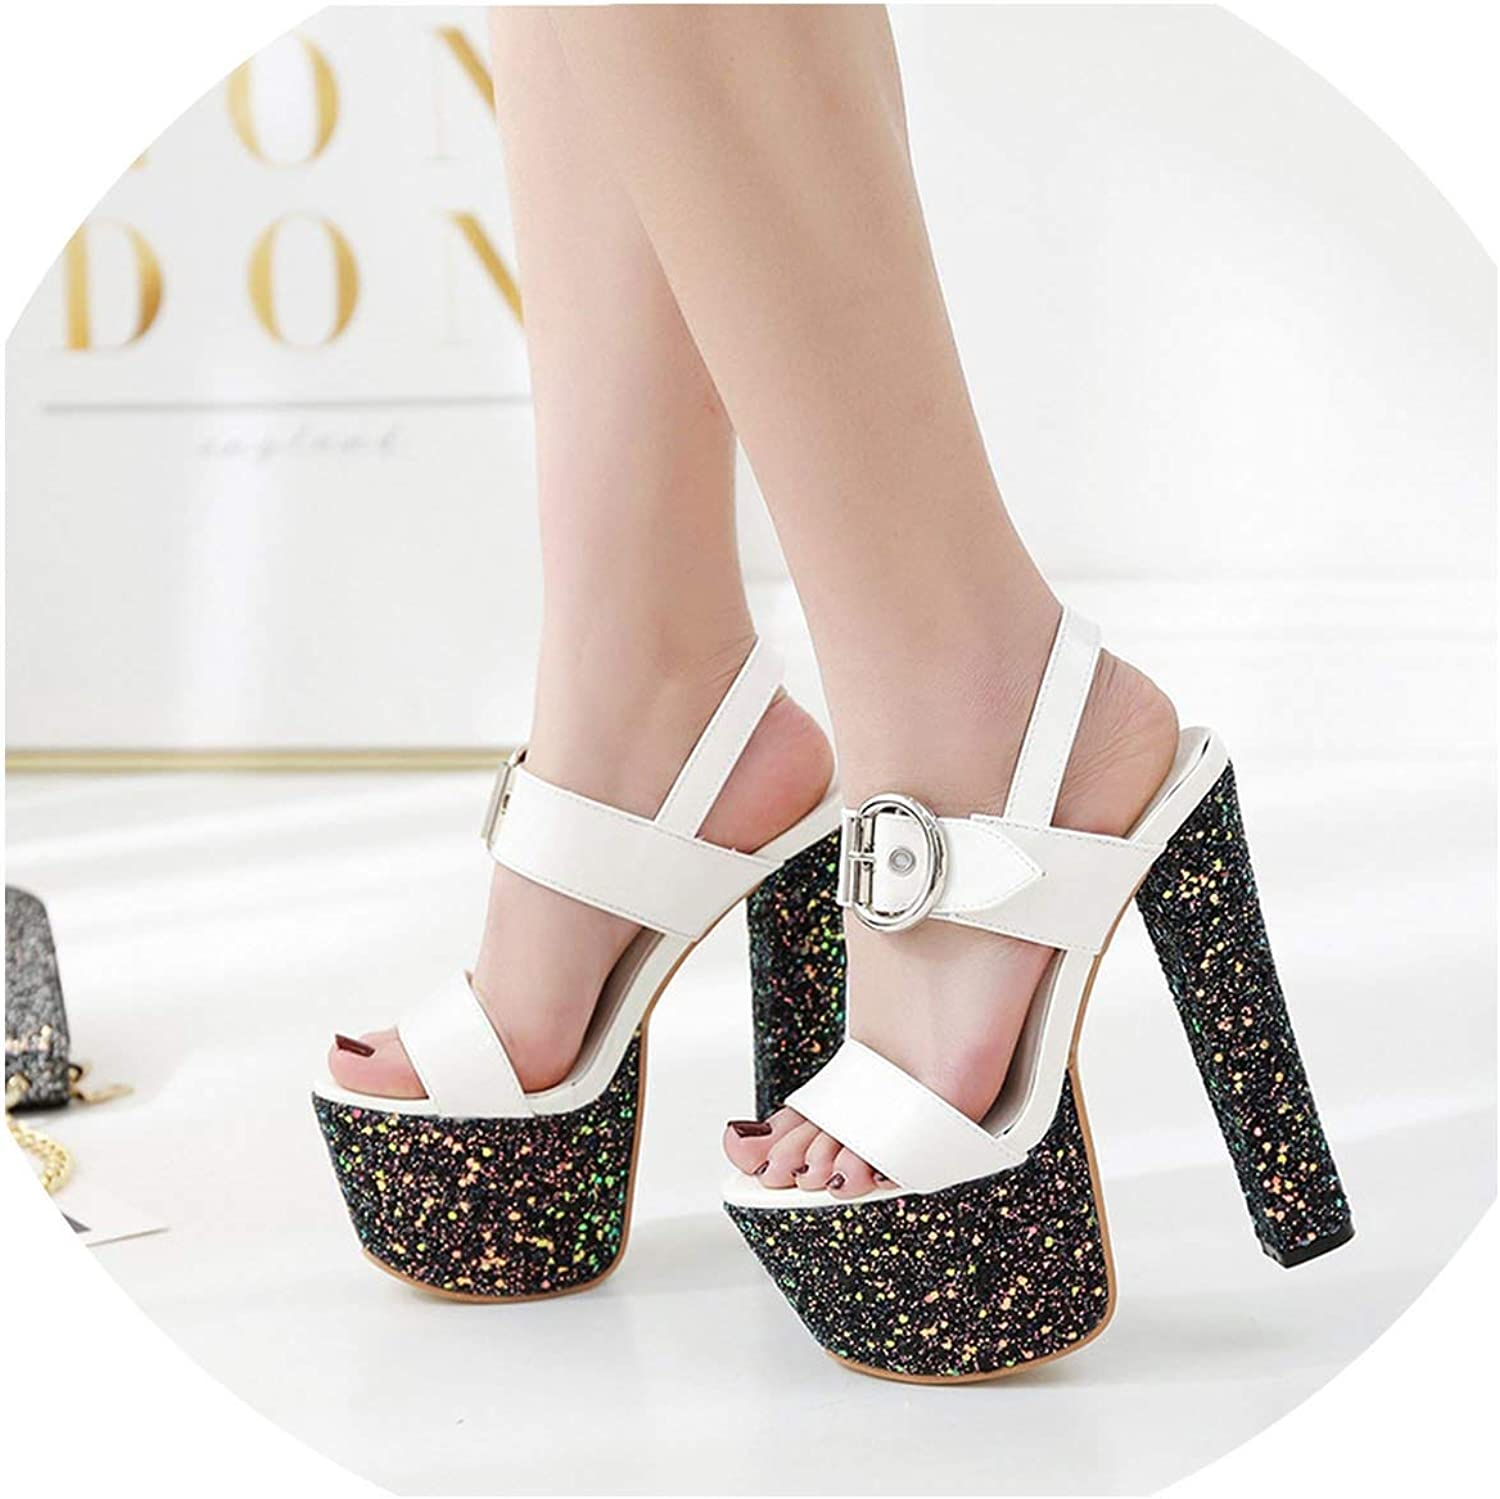 17Cm Super High Heels Thick Sandals Female Fish Mouth Waterproof Table Sequins Hate Days High Catwalk shoes